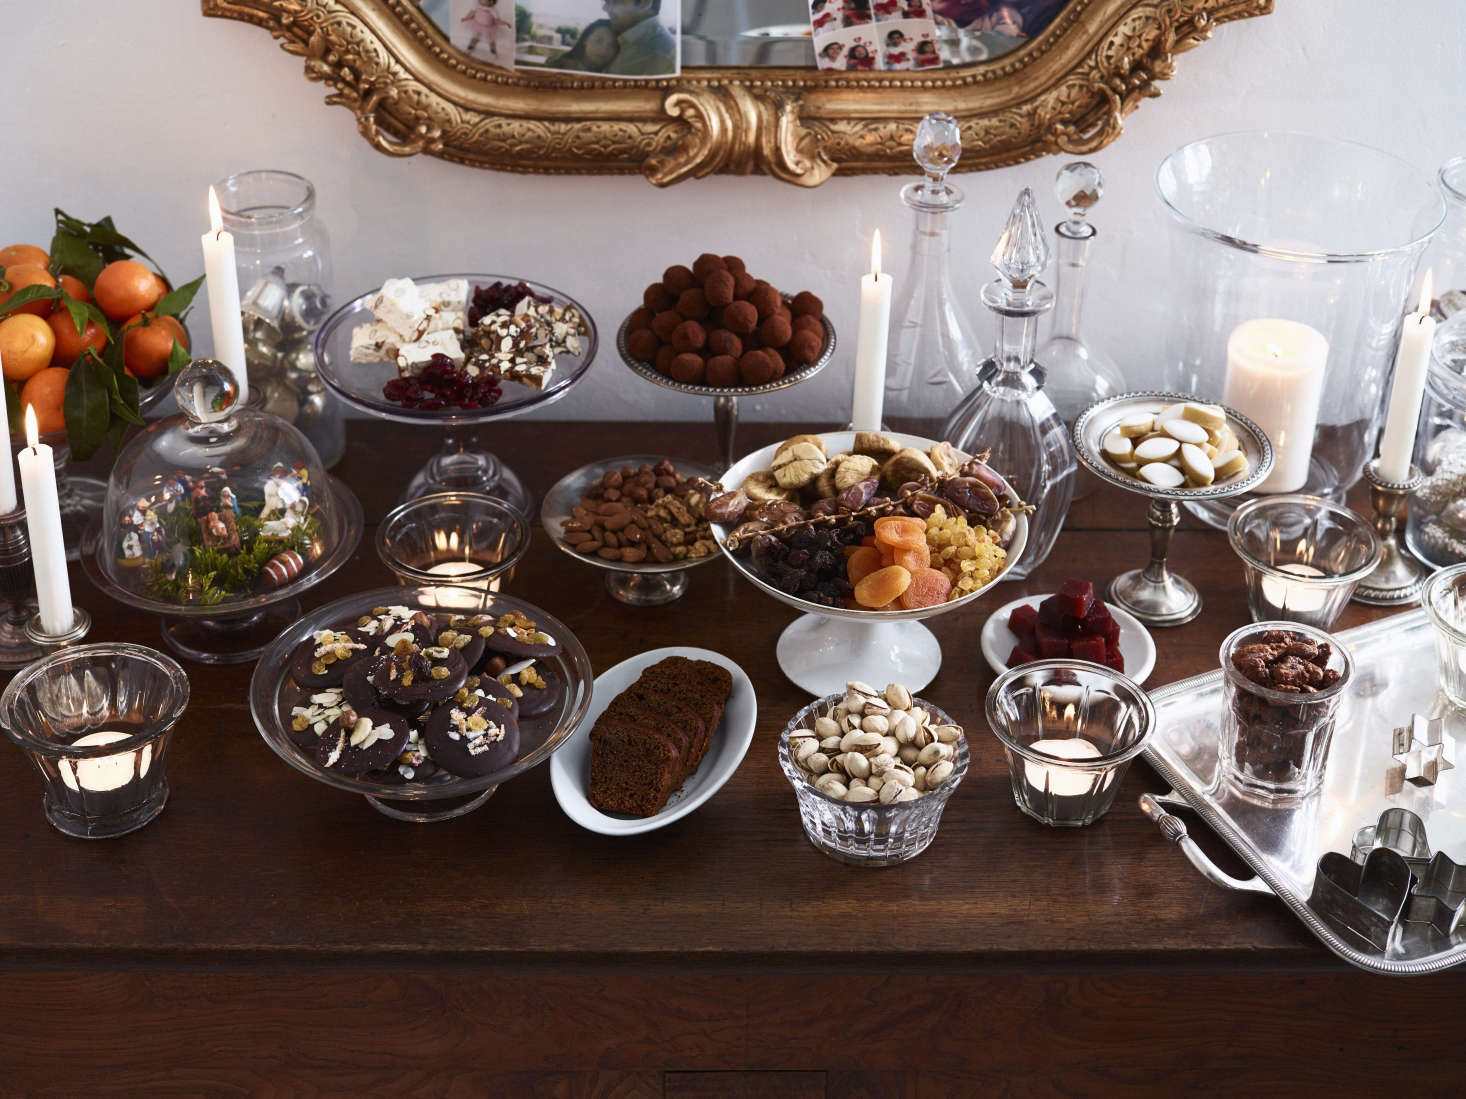 Do as the French do and let sumptuous bowls of food double as decor. Here—following the Provençal tradition of Thirteen Desserts—nuts, dried fruit, and sweets look elegant when displayed in mix-and-match cut glass and silver heirlooms. Photograph by Anson Smart fromChristmas in Burgundy: At Home with the Expat Family Behind the Cook's Atelier.